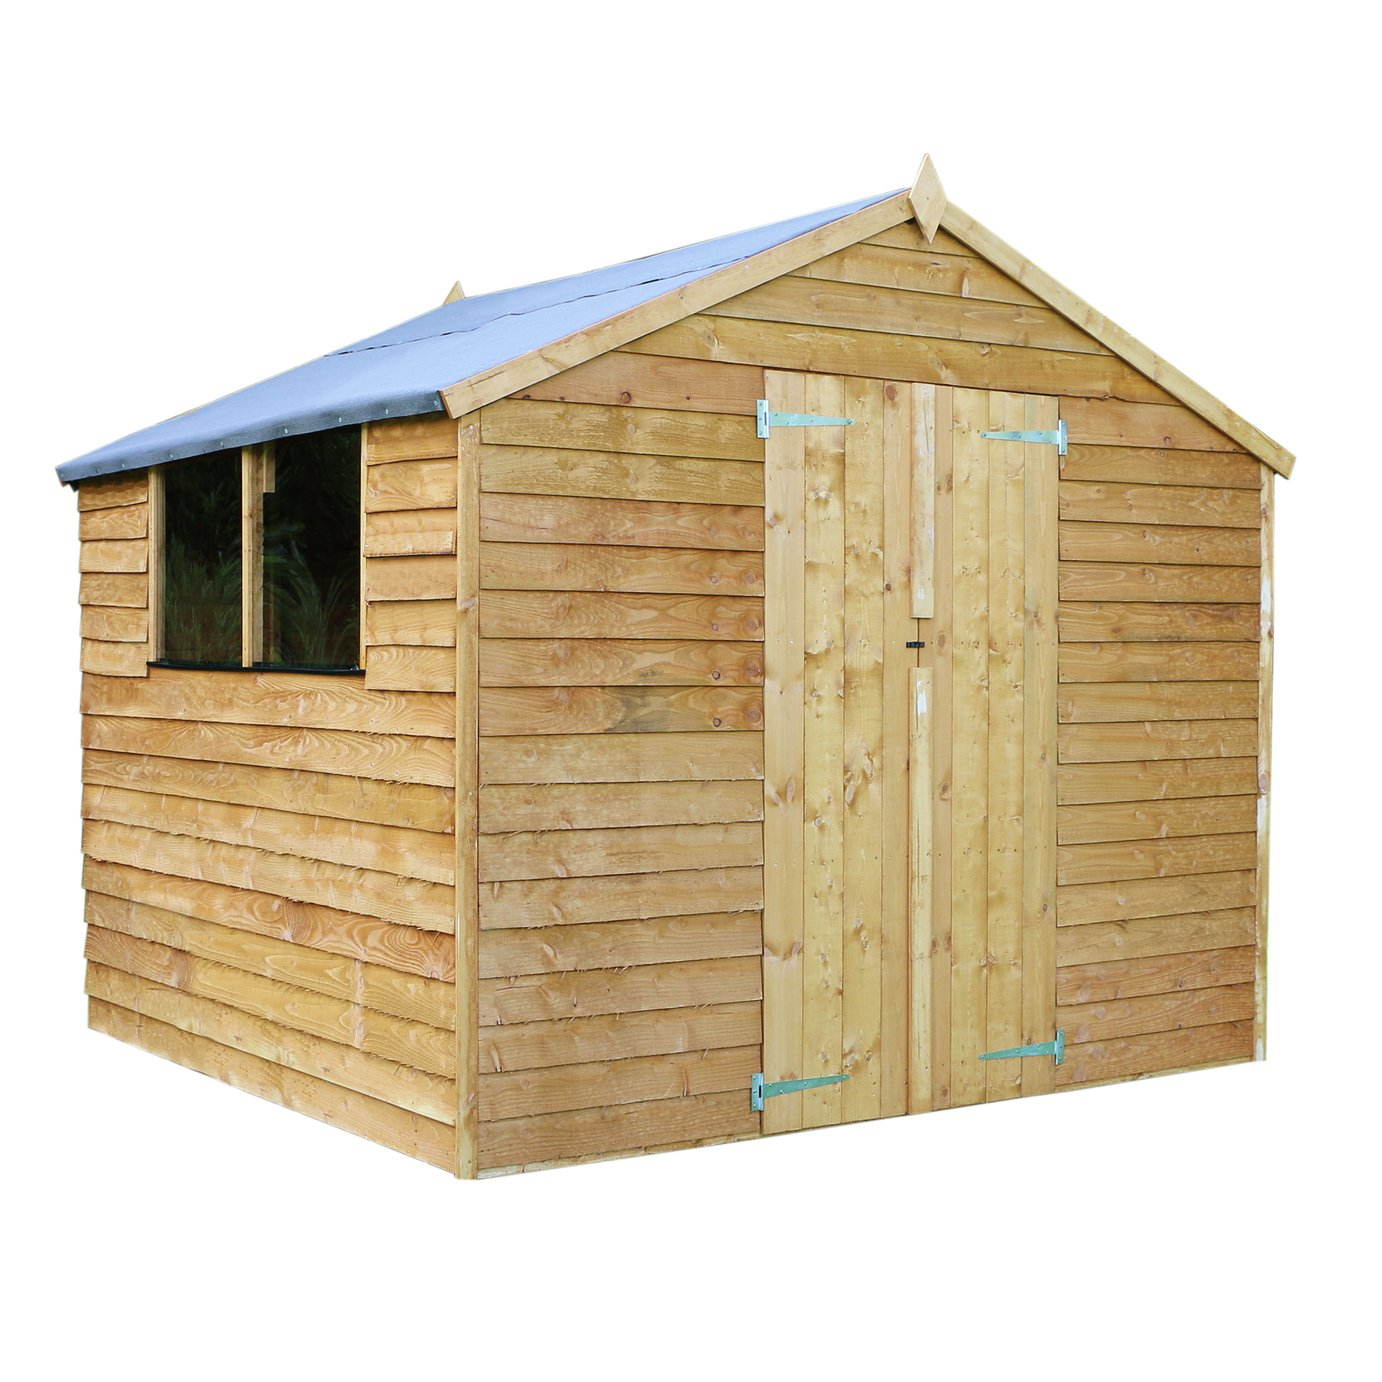 Mercia Wooden 8 x 8ft Overlap Apex Garden Shed